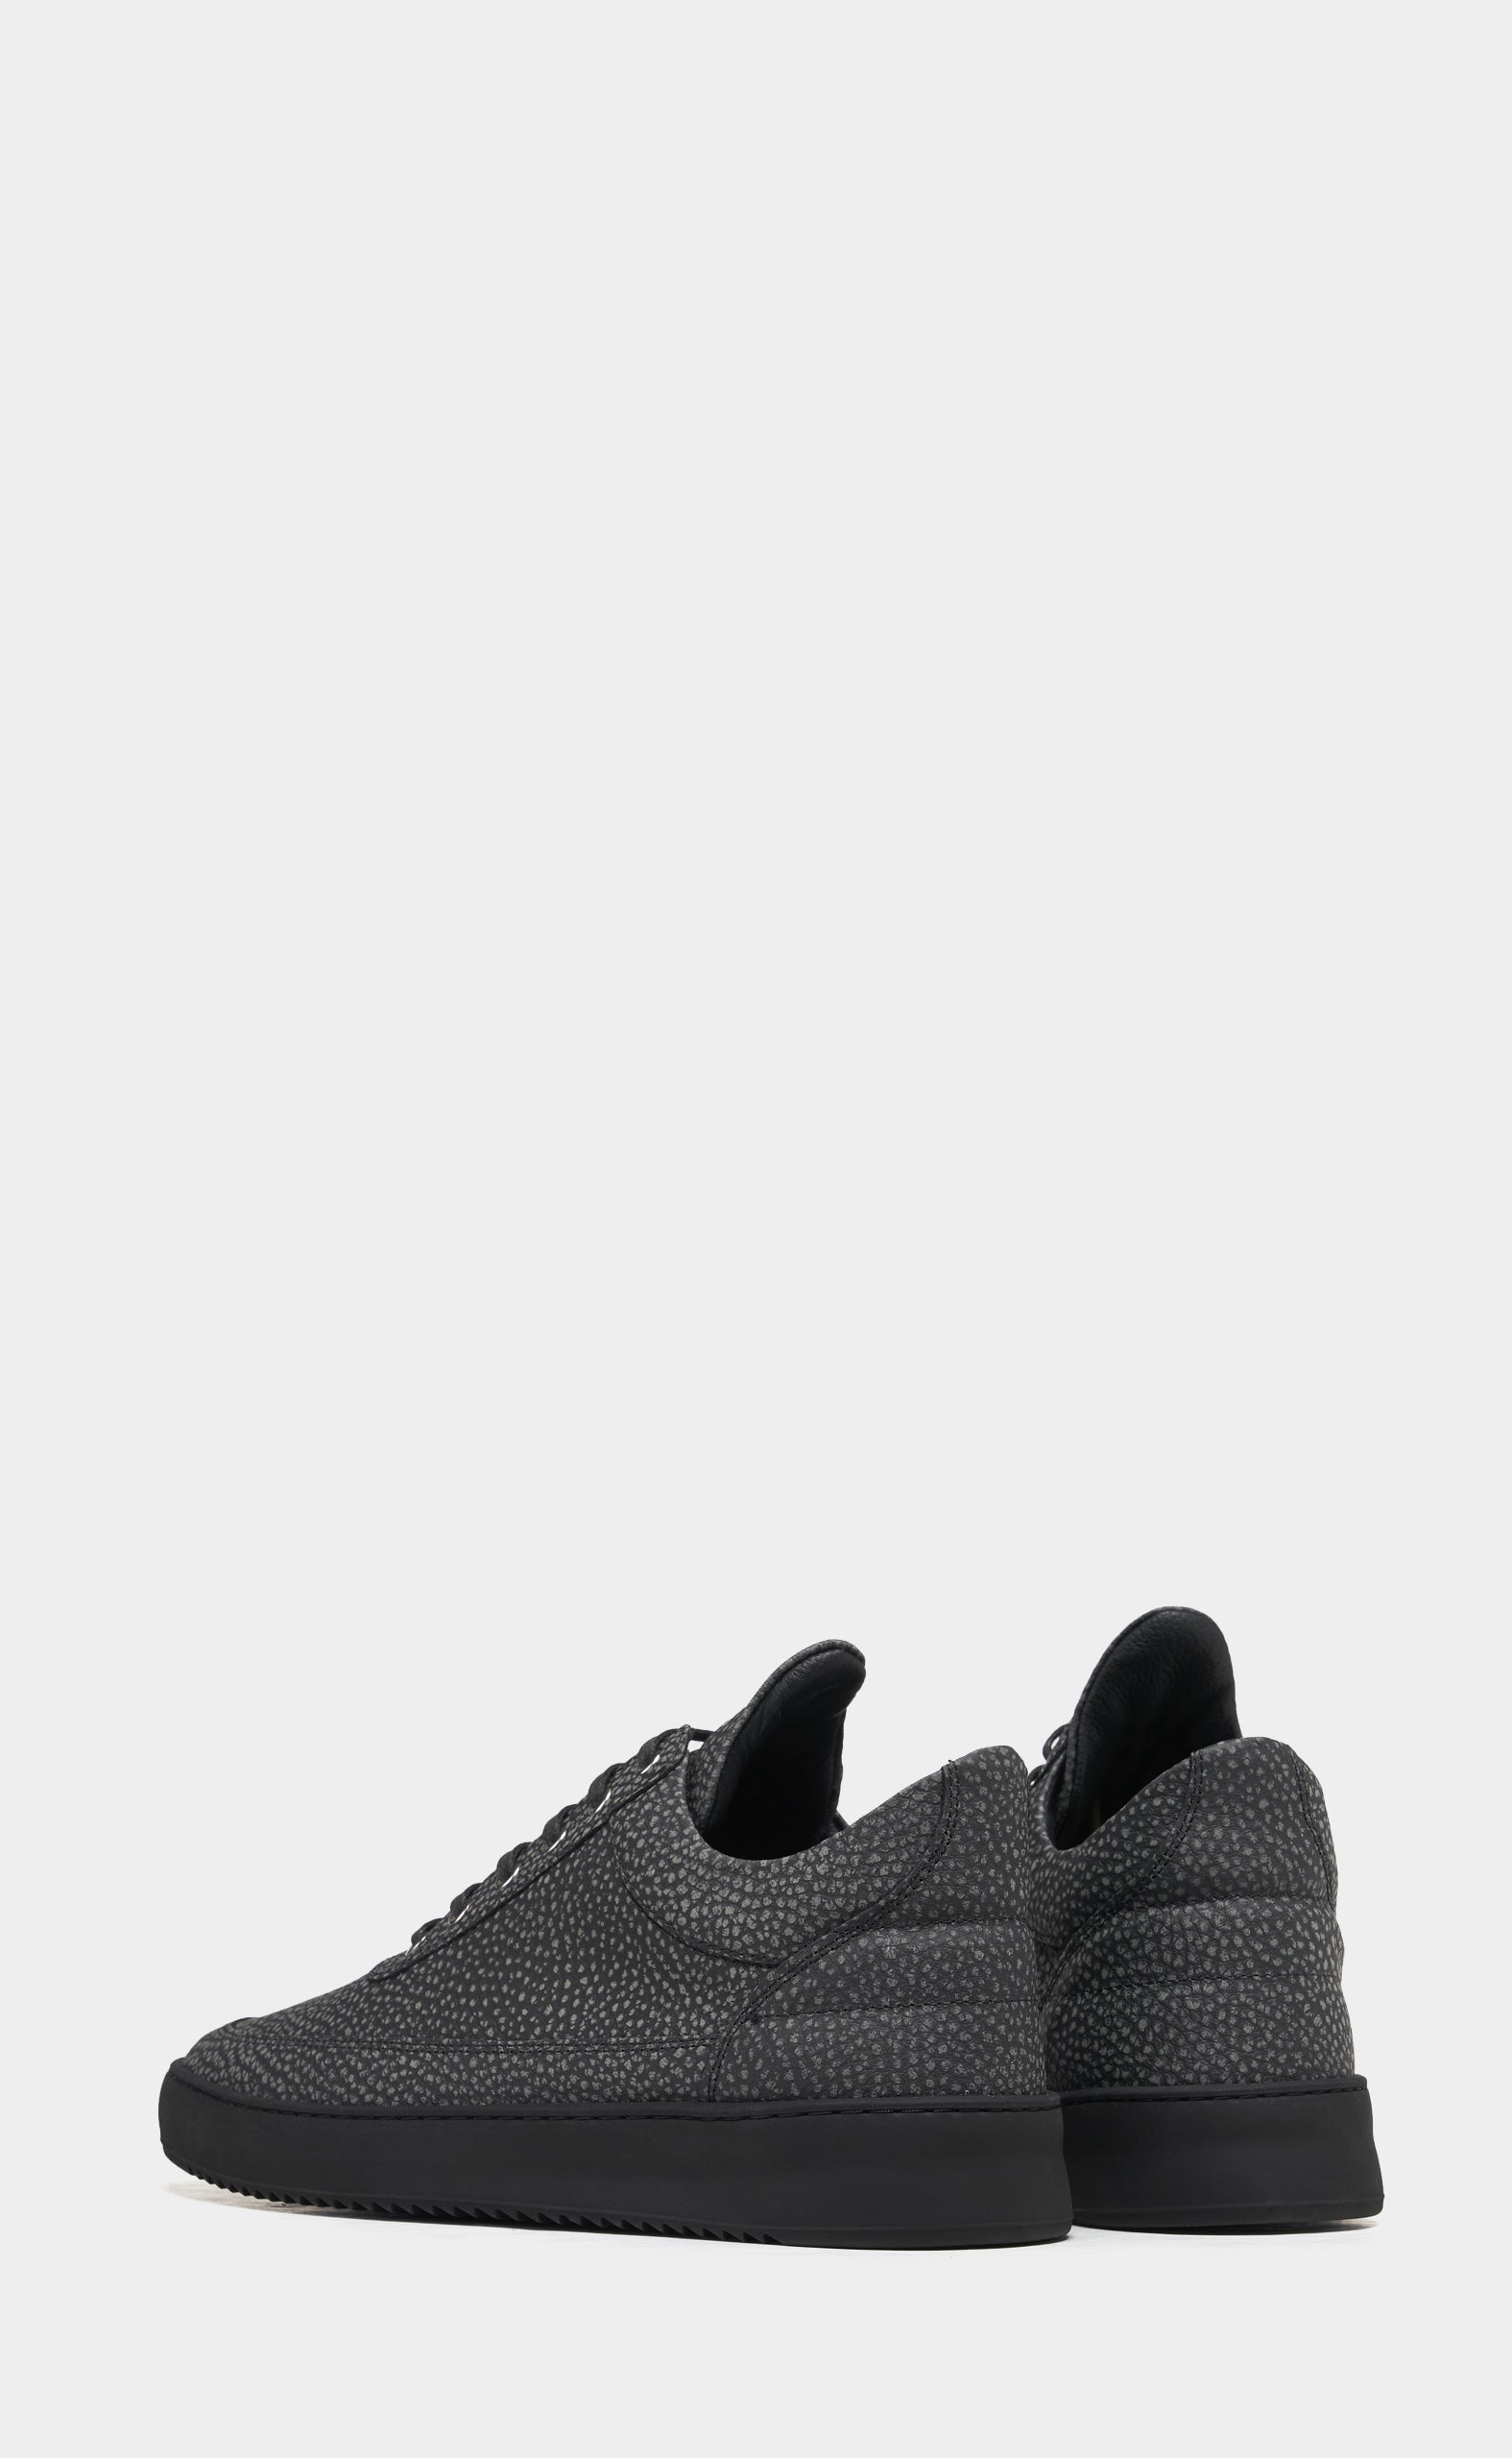 Low Top Ripple Moor All Black